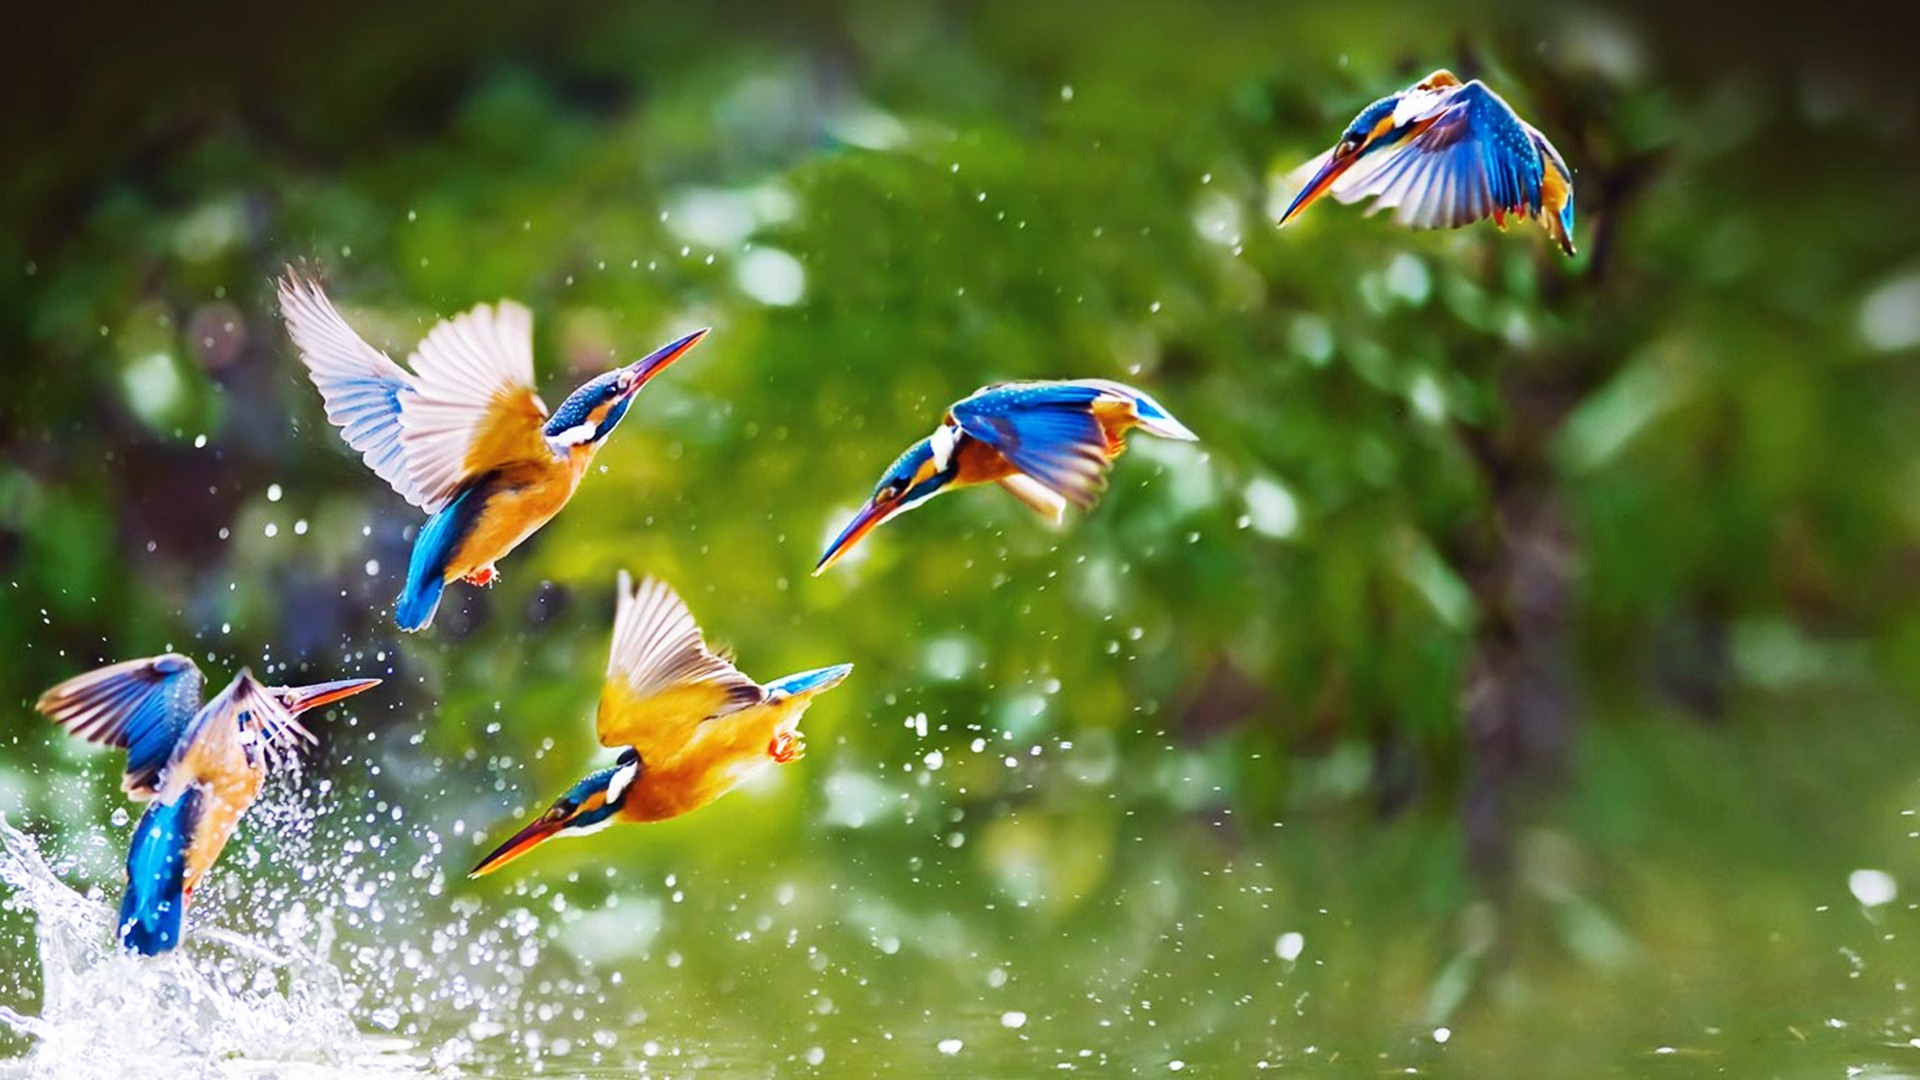 Beautiful Birds Wallpapers HD Pictures Live HD Wallpaper HQ Pictures 1920x1080